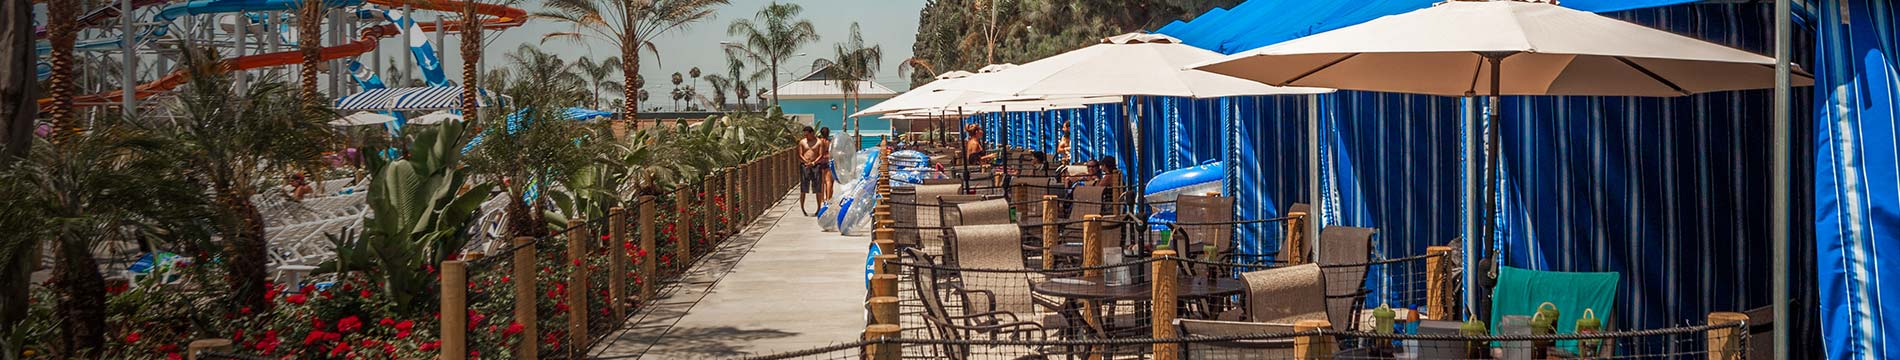 Knott's Soak City Cabanas